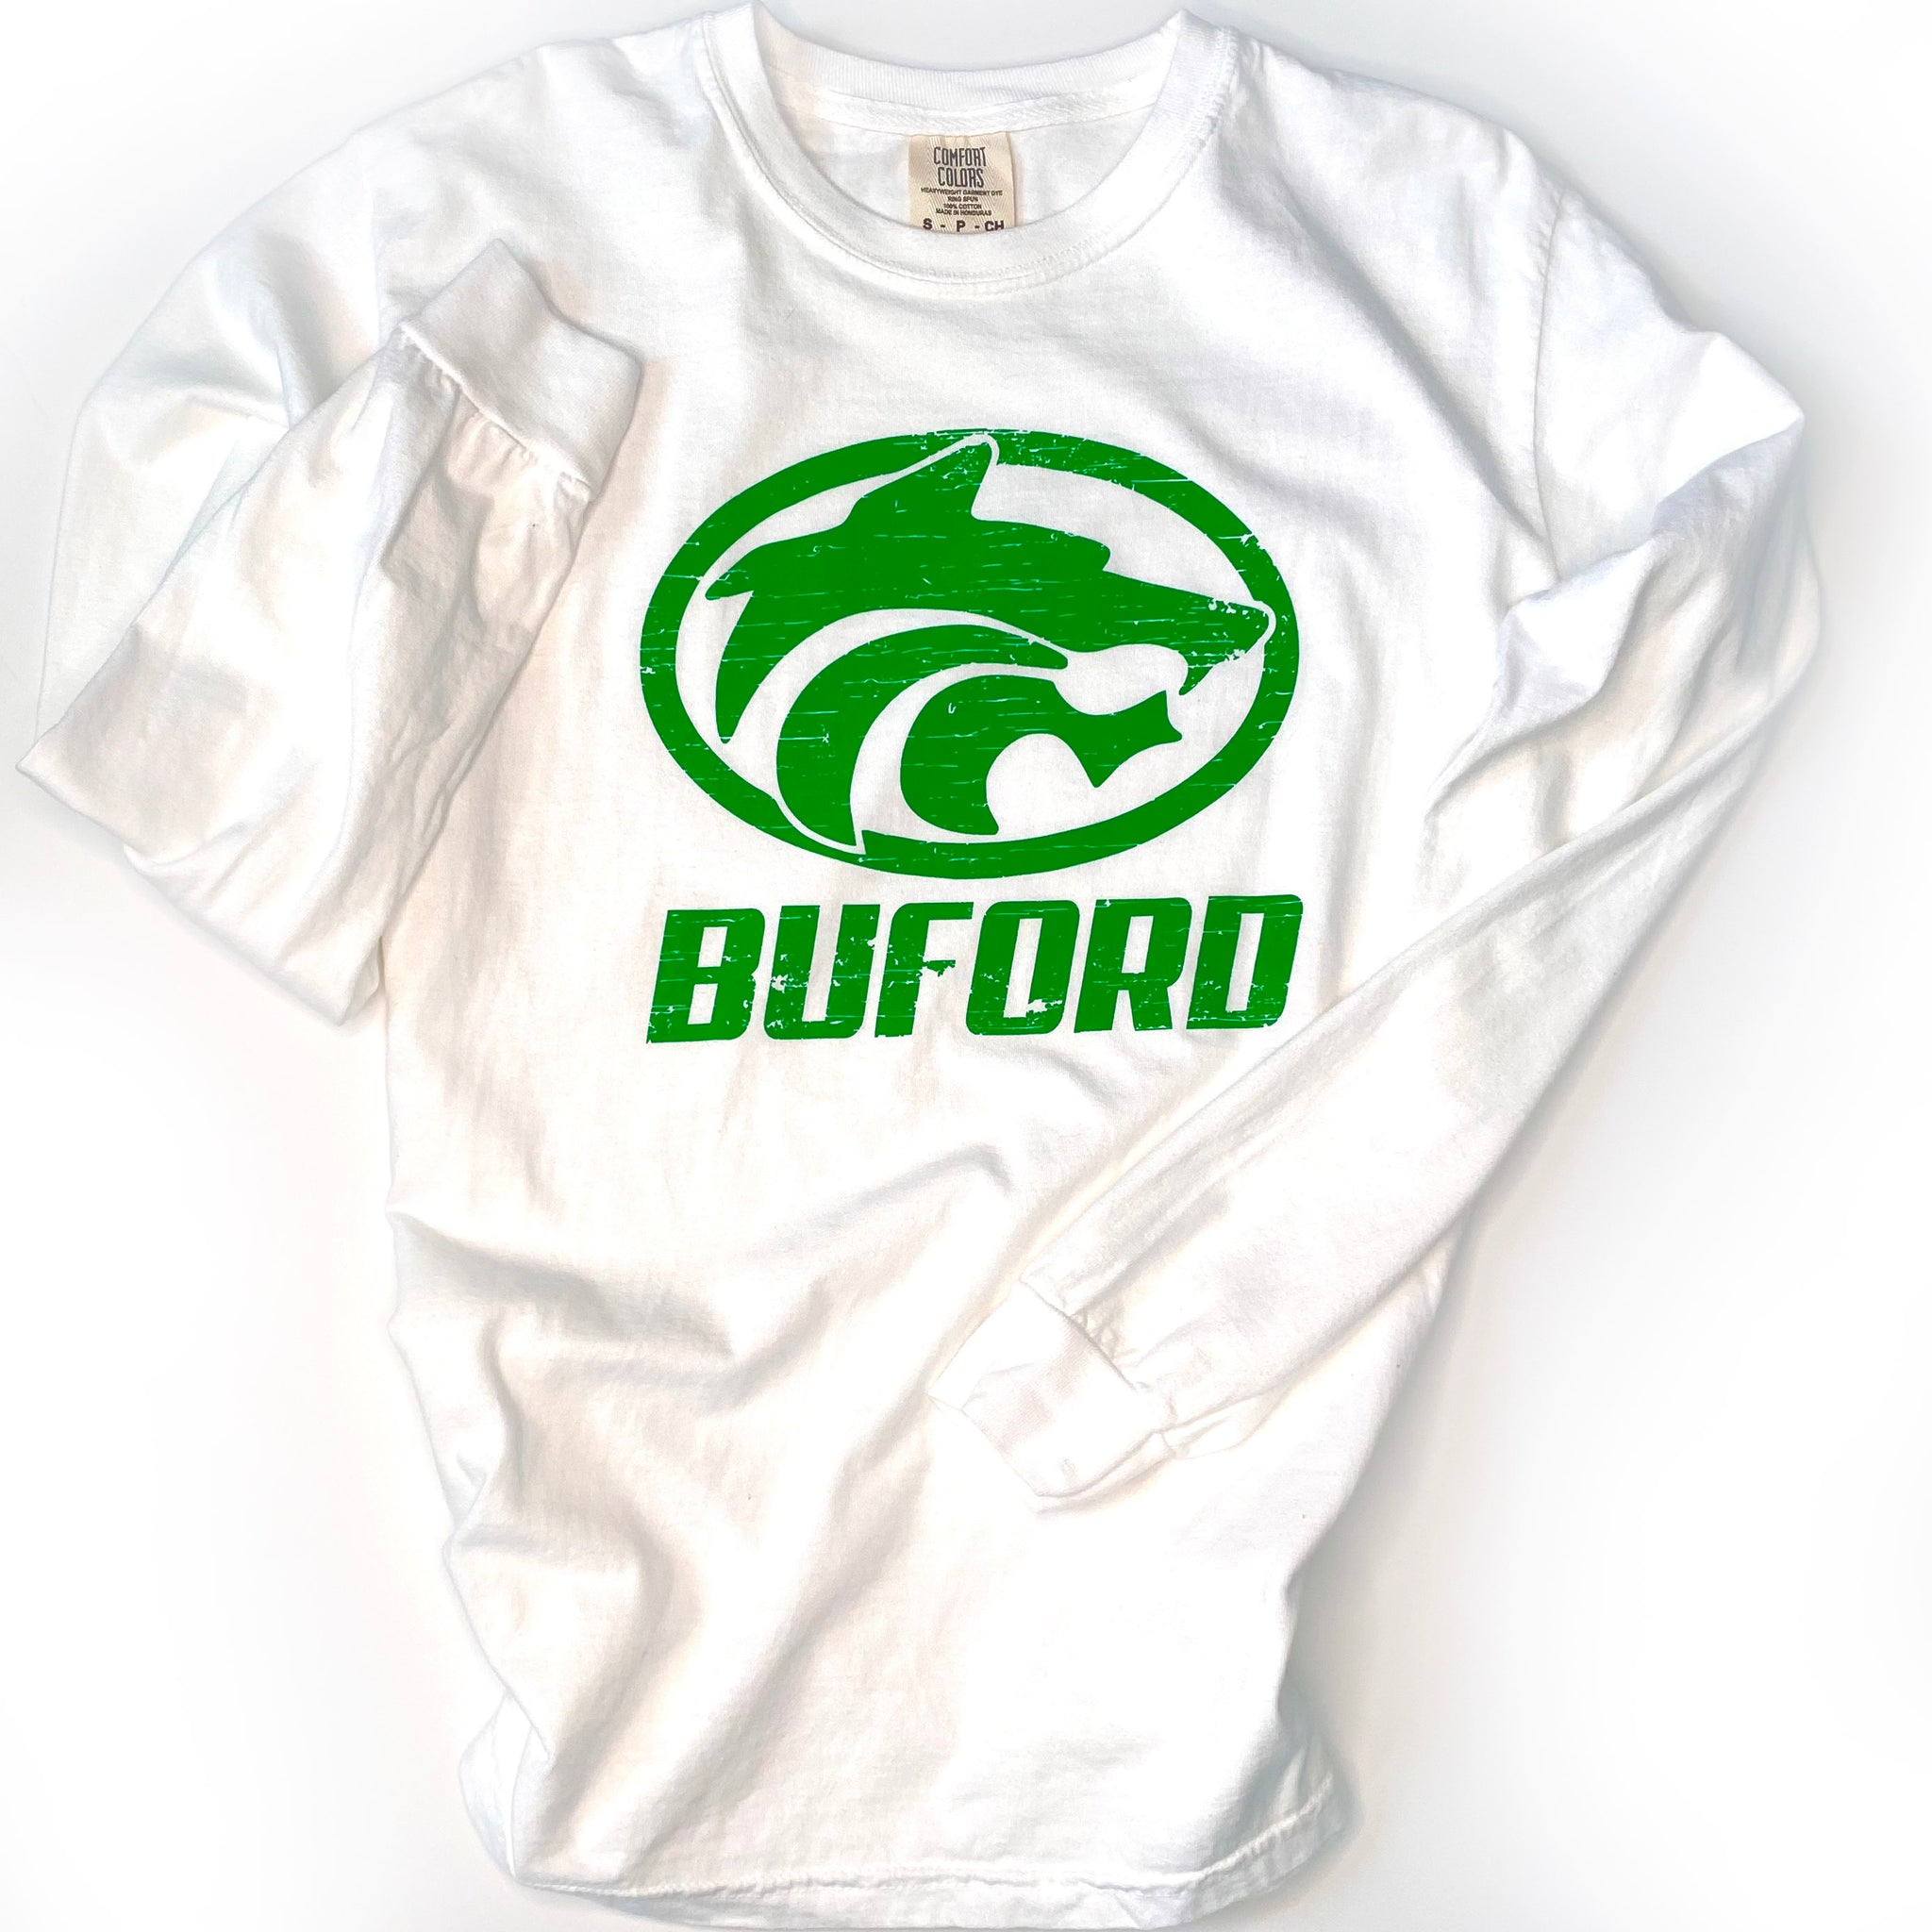 SALE Buford Wolves Long Sleeve White Comfort Colors T-shirt - Adult